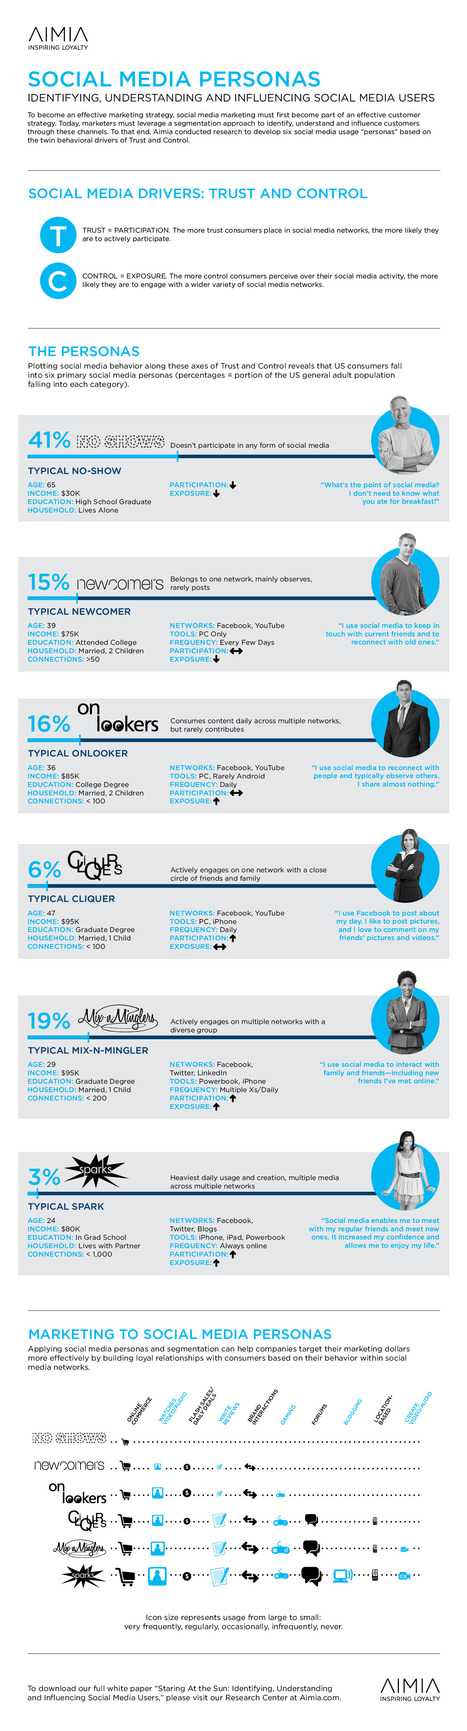 Social Media Personas – Identifying, Understanding and Influencing Social Media Users [Infographic] | Social Media | Scoop.it